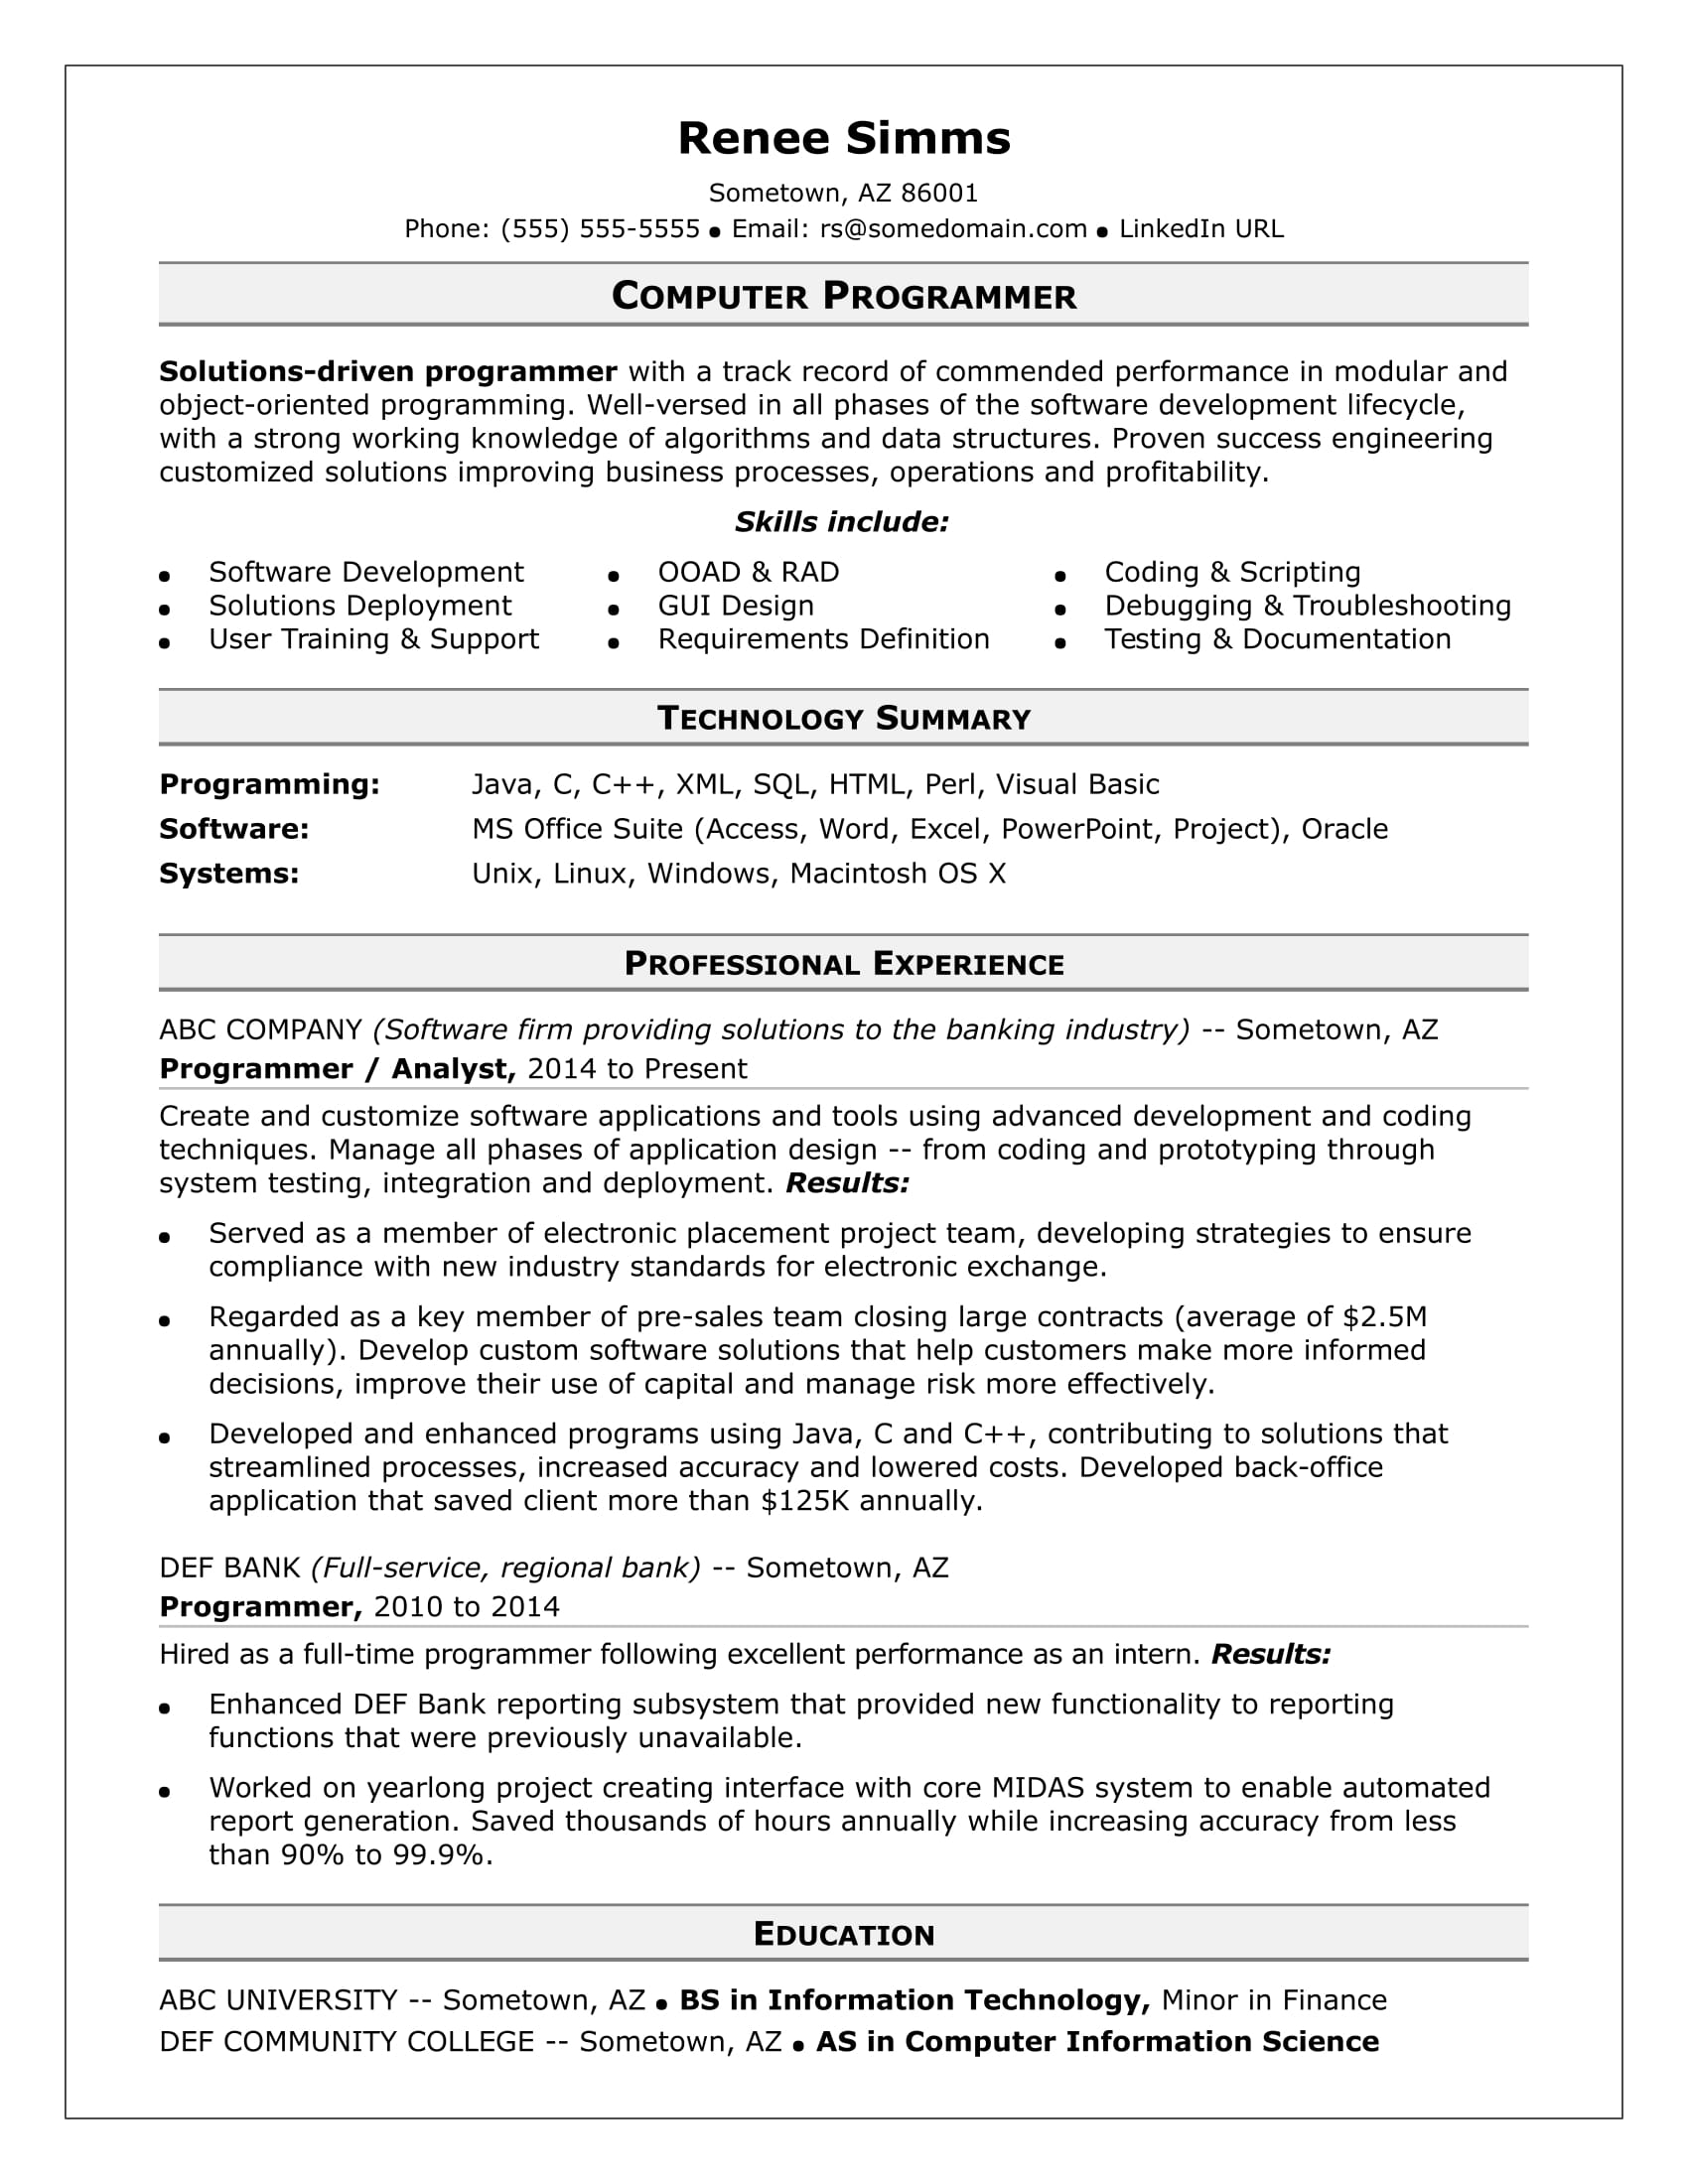 Computer Programming Resume Sample Resume For A Midlevel Computer Programmer  Monster